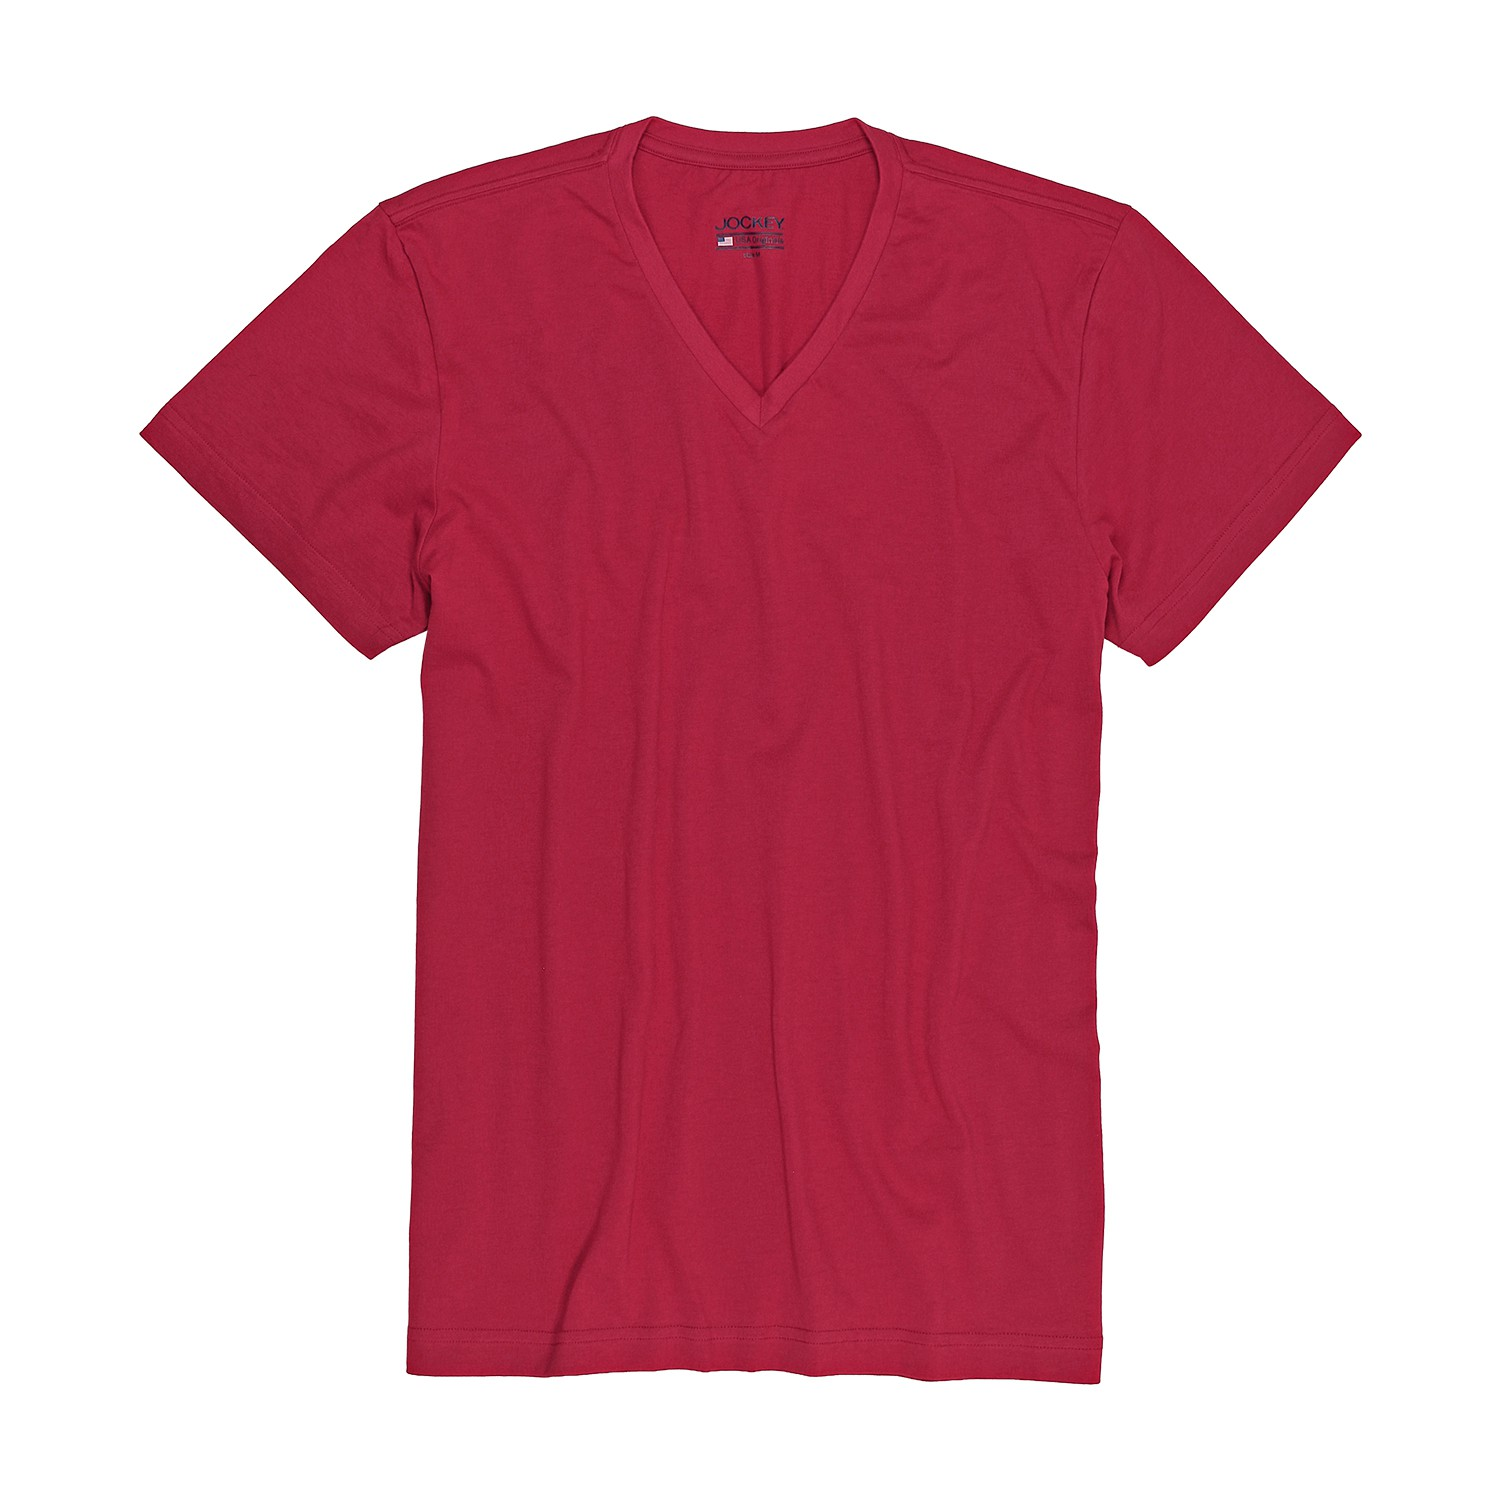 Detail Image to T-shirt with v-neck from Jockey in oversize until 6XL, red